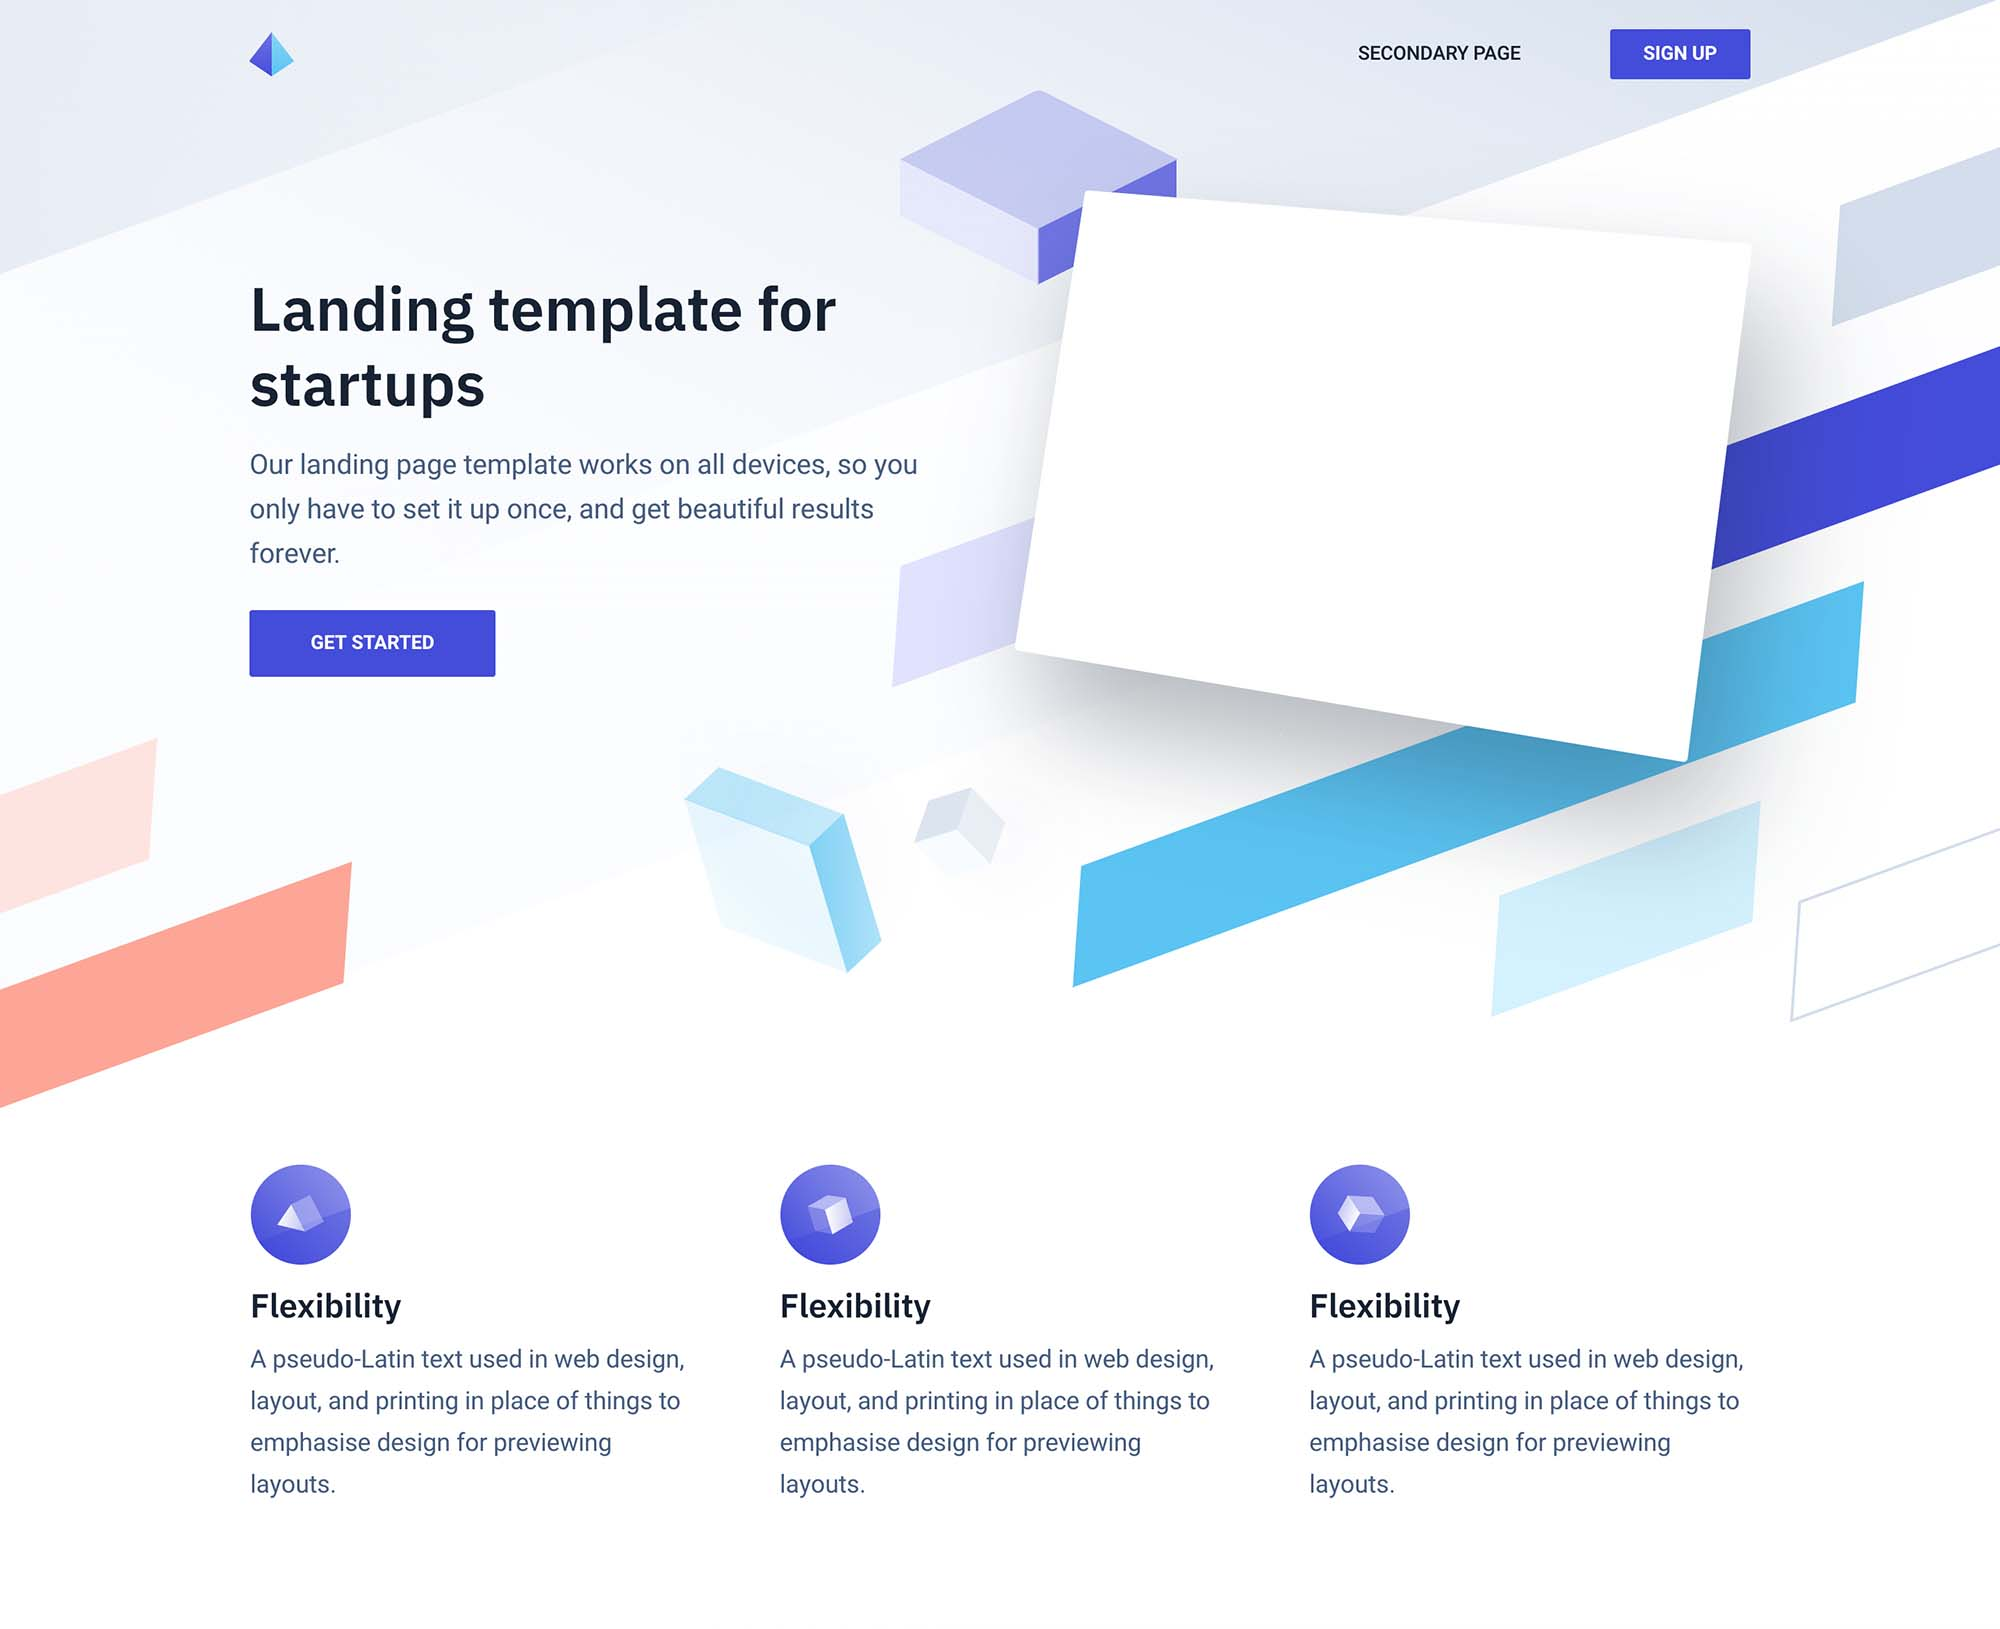 Twist Landing Page Template for Startups